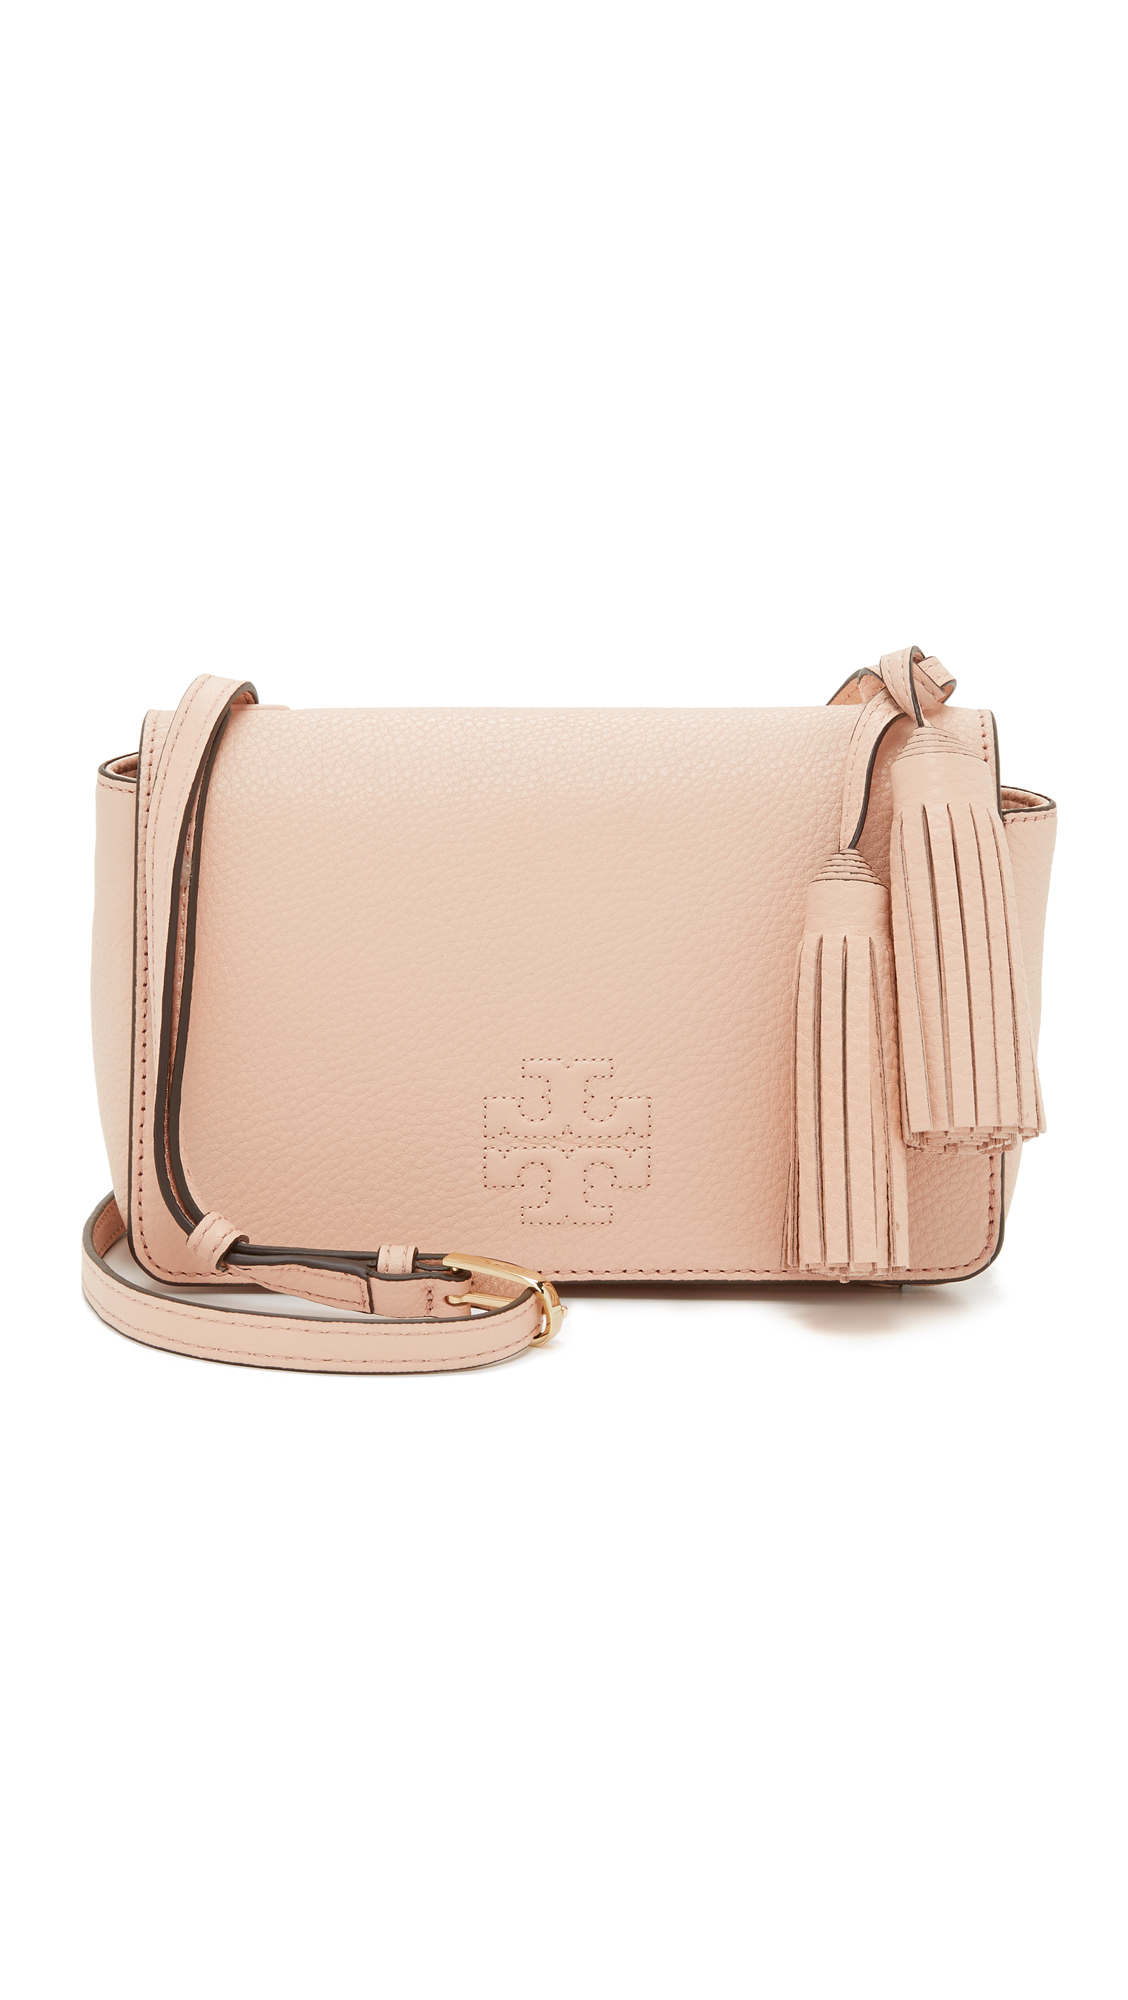 329b7c3bee179 Tory Burch Thea Mini Bag